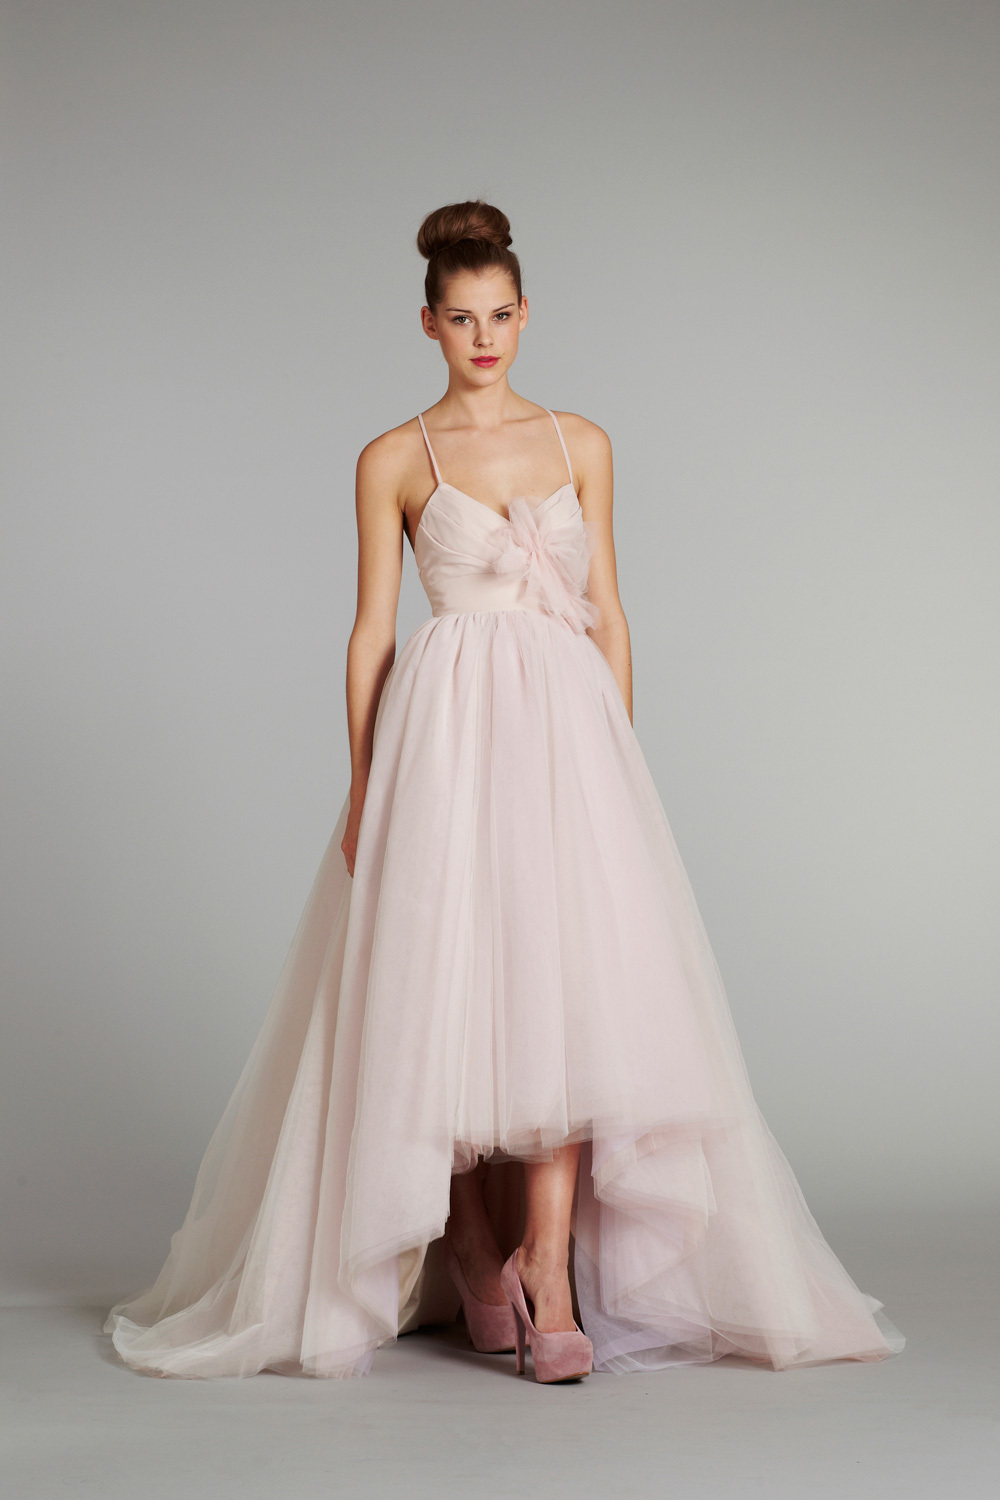 Bridal-gown-wedding-dress-jlm-hayley-paige-blush-fall-2012-lilac-front.full